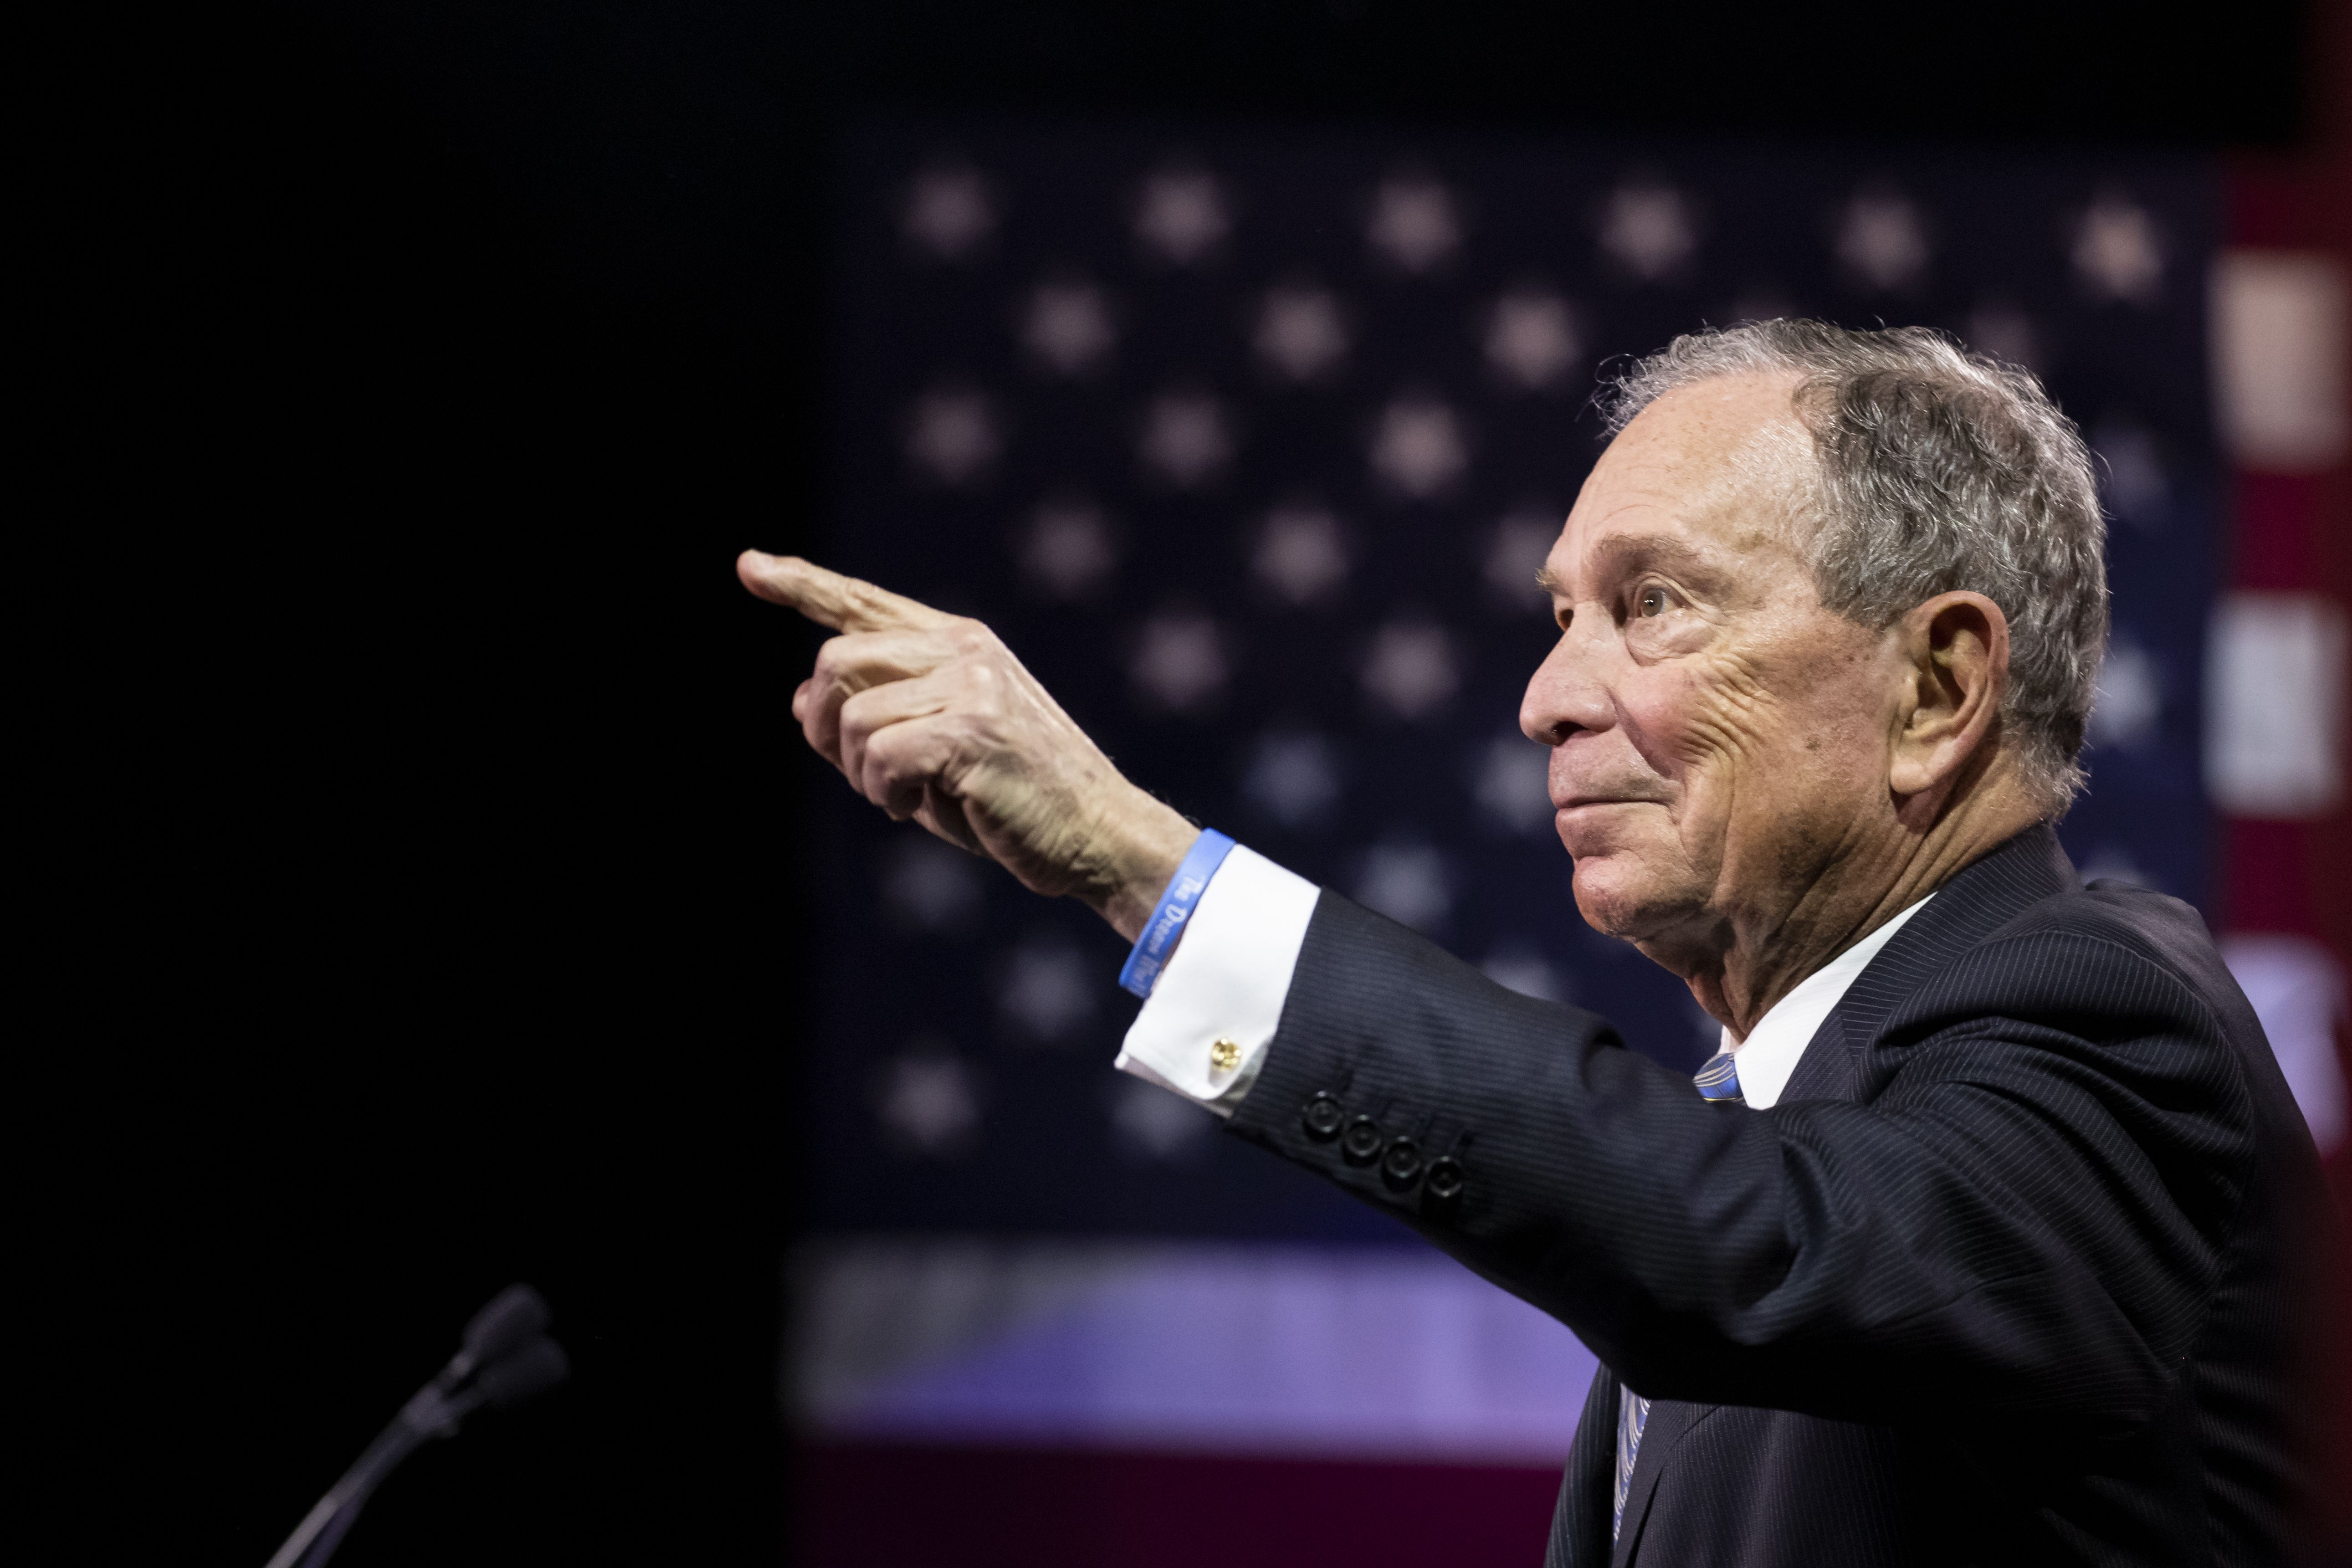 Mike Bloomberg endorsed by 3 Congressional Black Caucus members - Axios